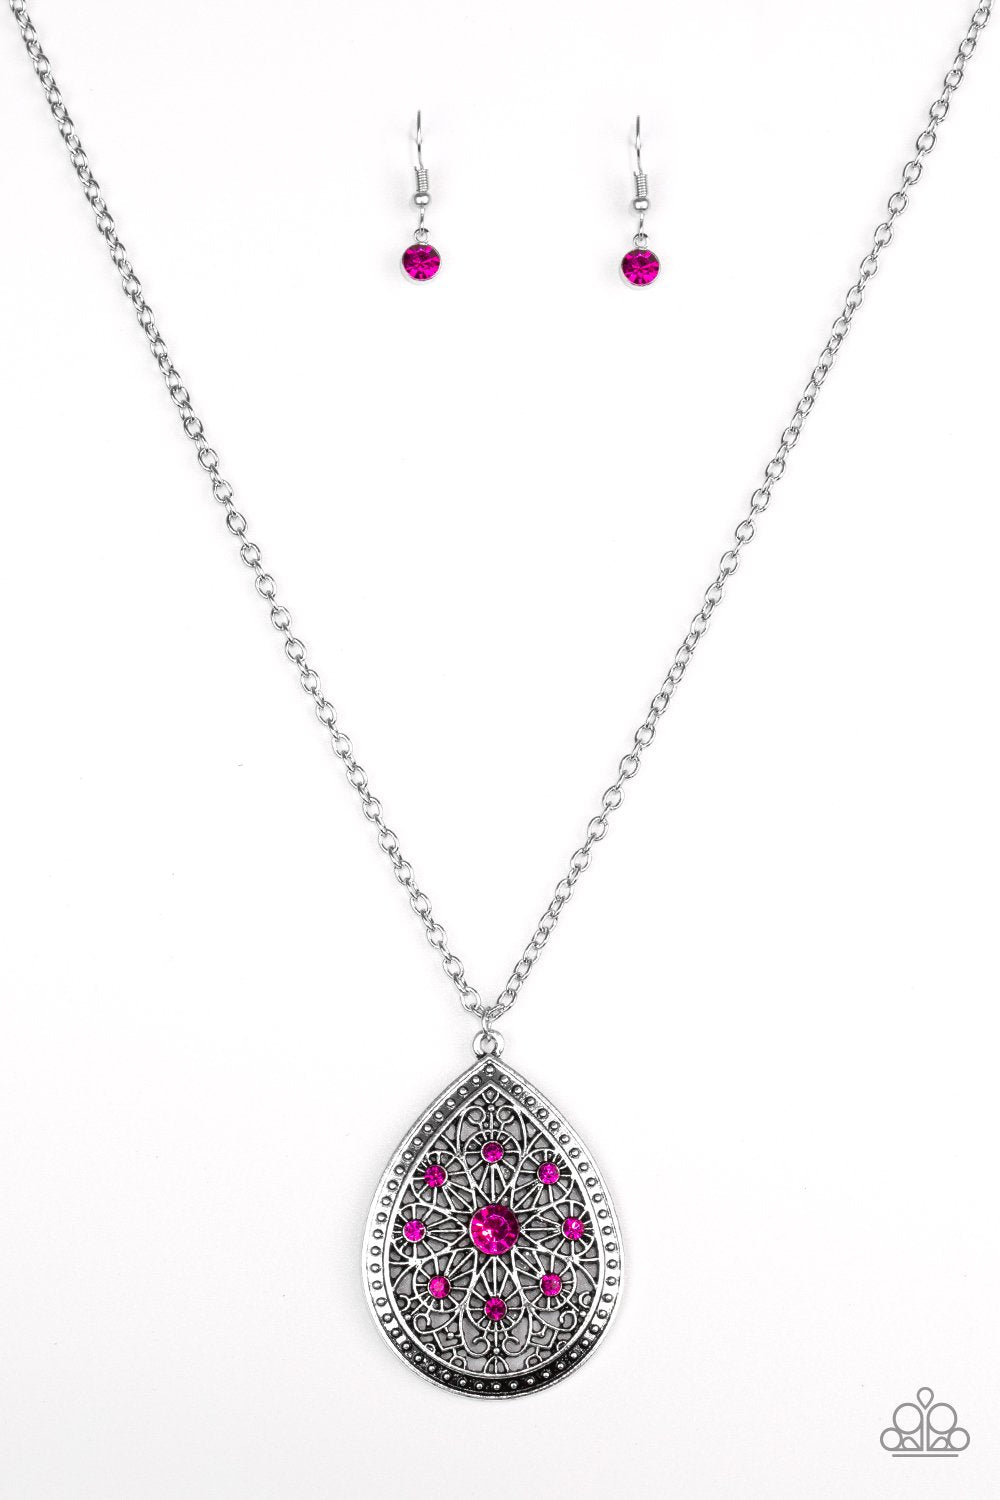 I Am Queen Necklace Pink